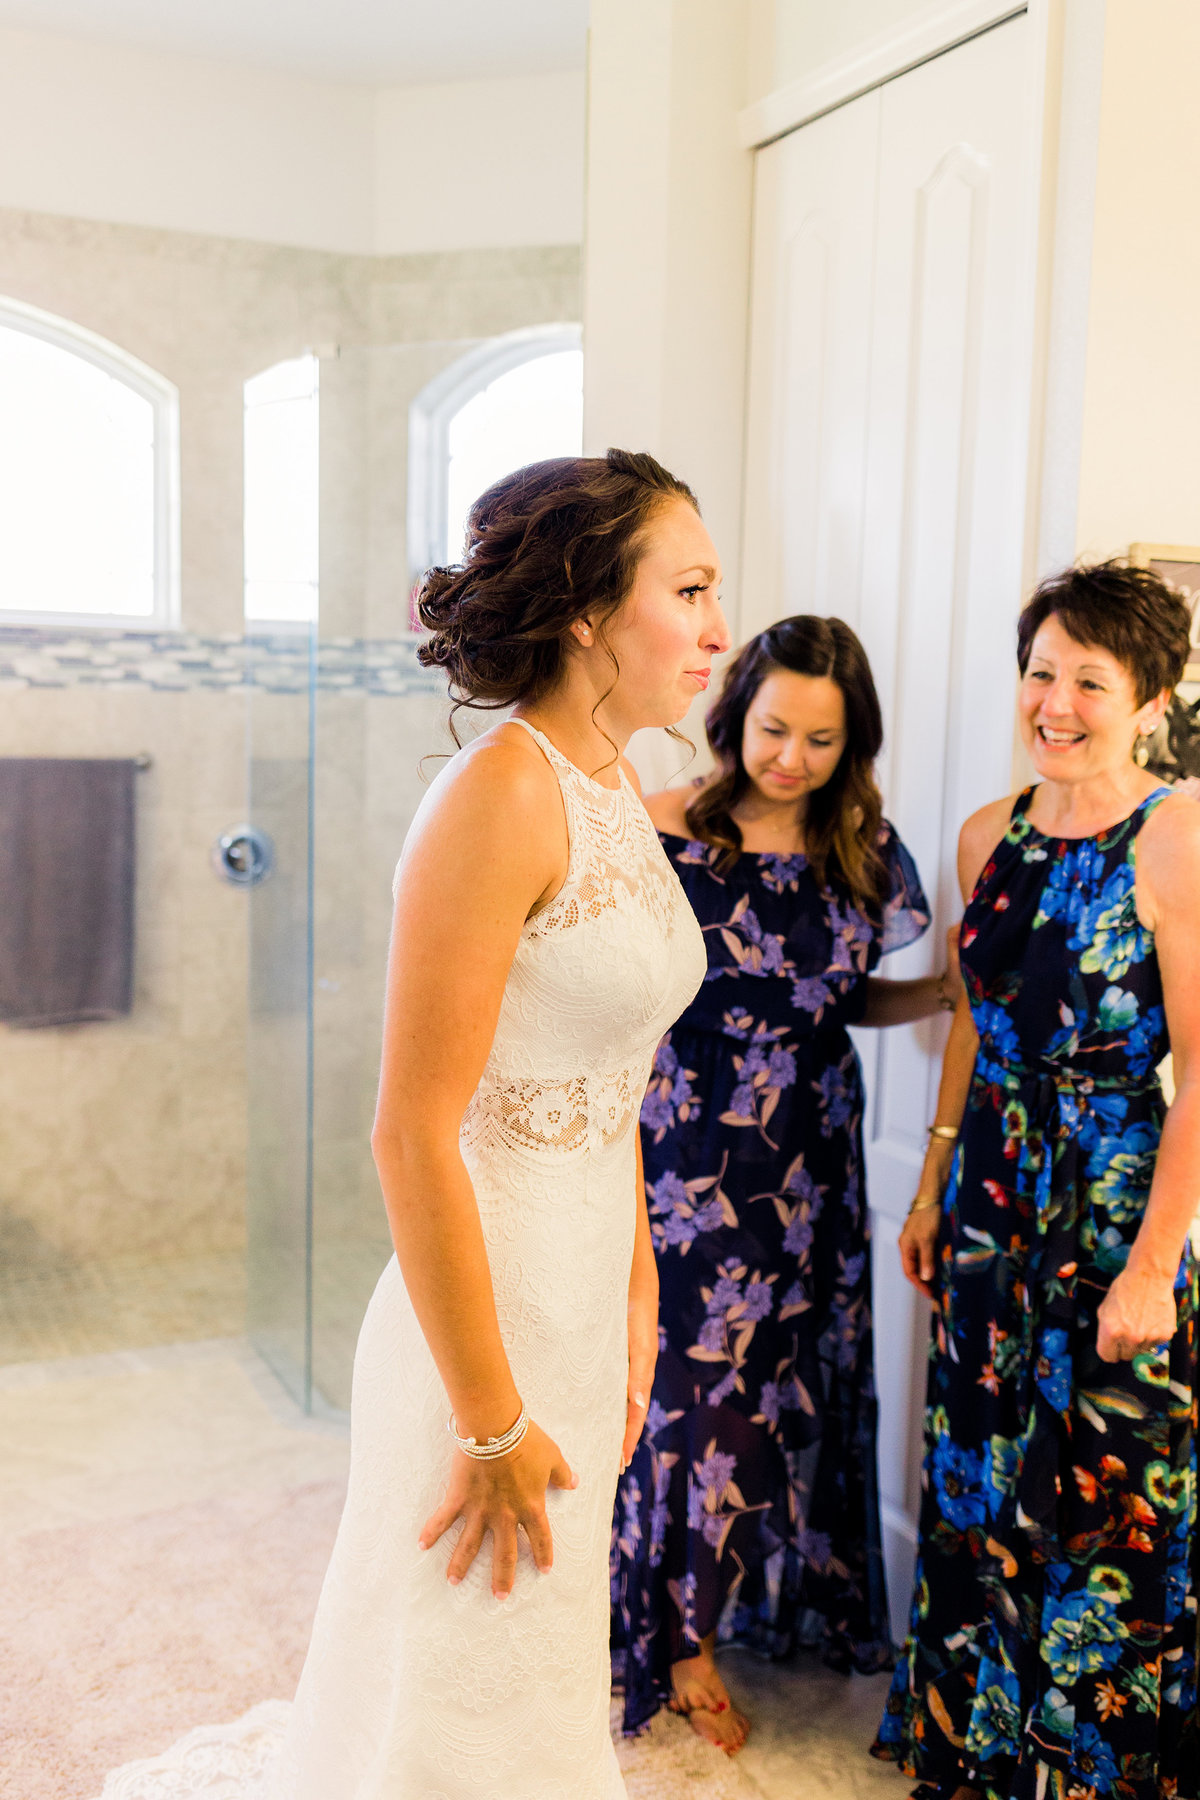 kimberly-hoyle-photography-kelly-david-grant-florida-wedding-34